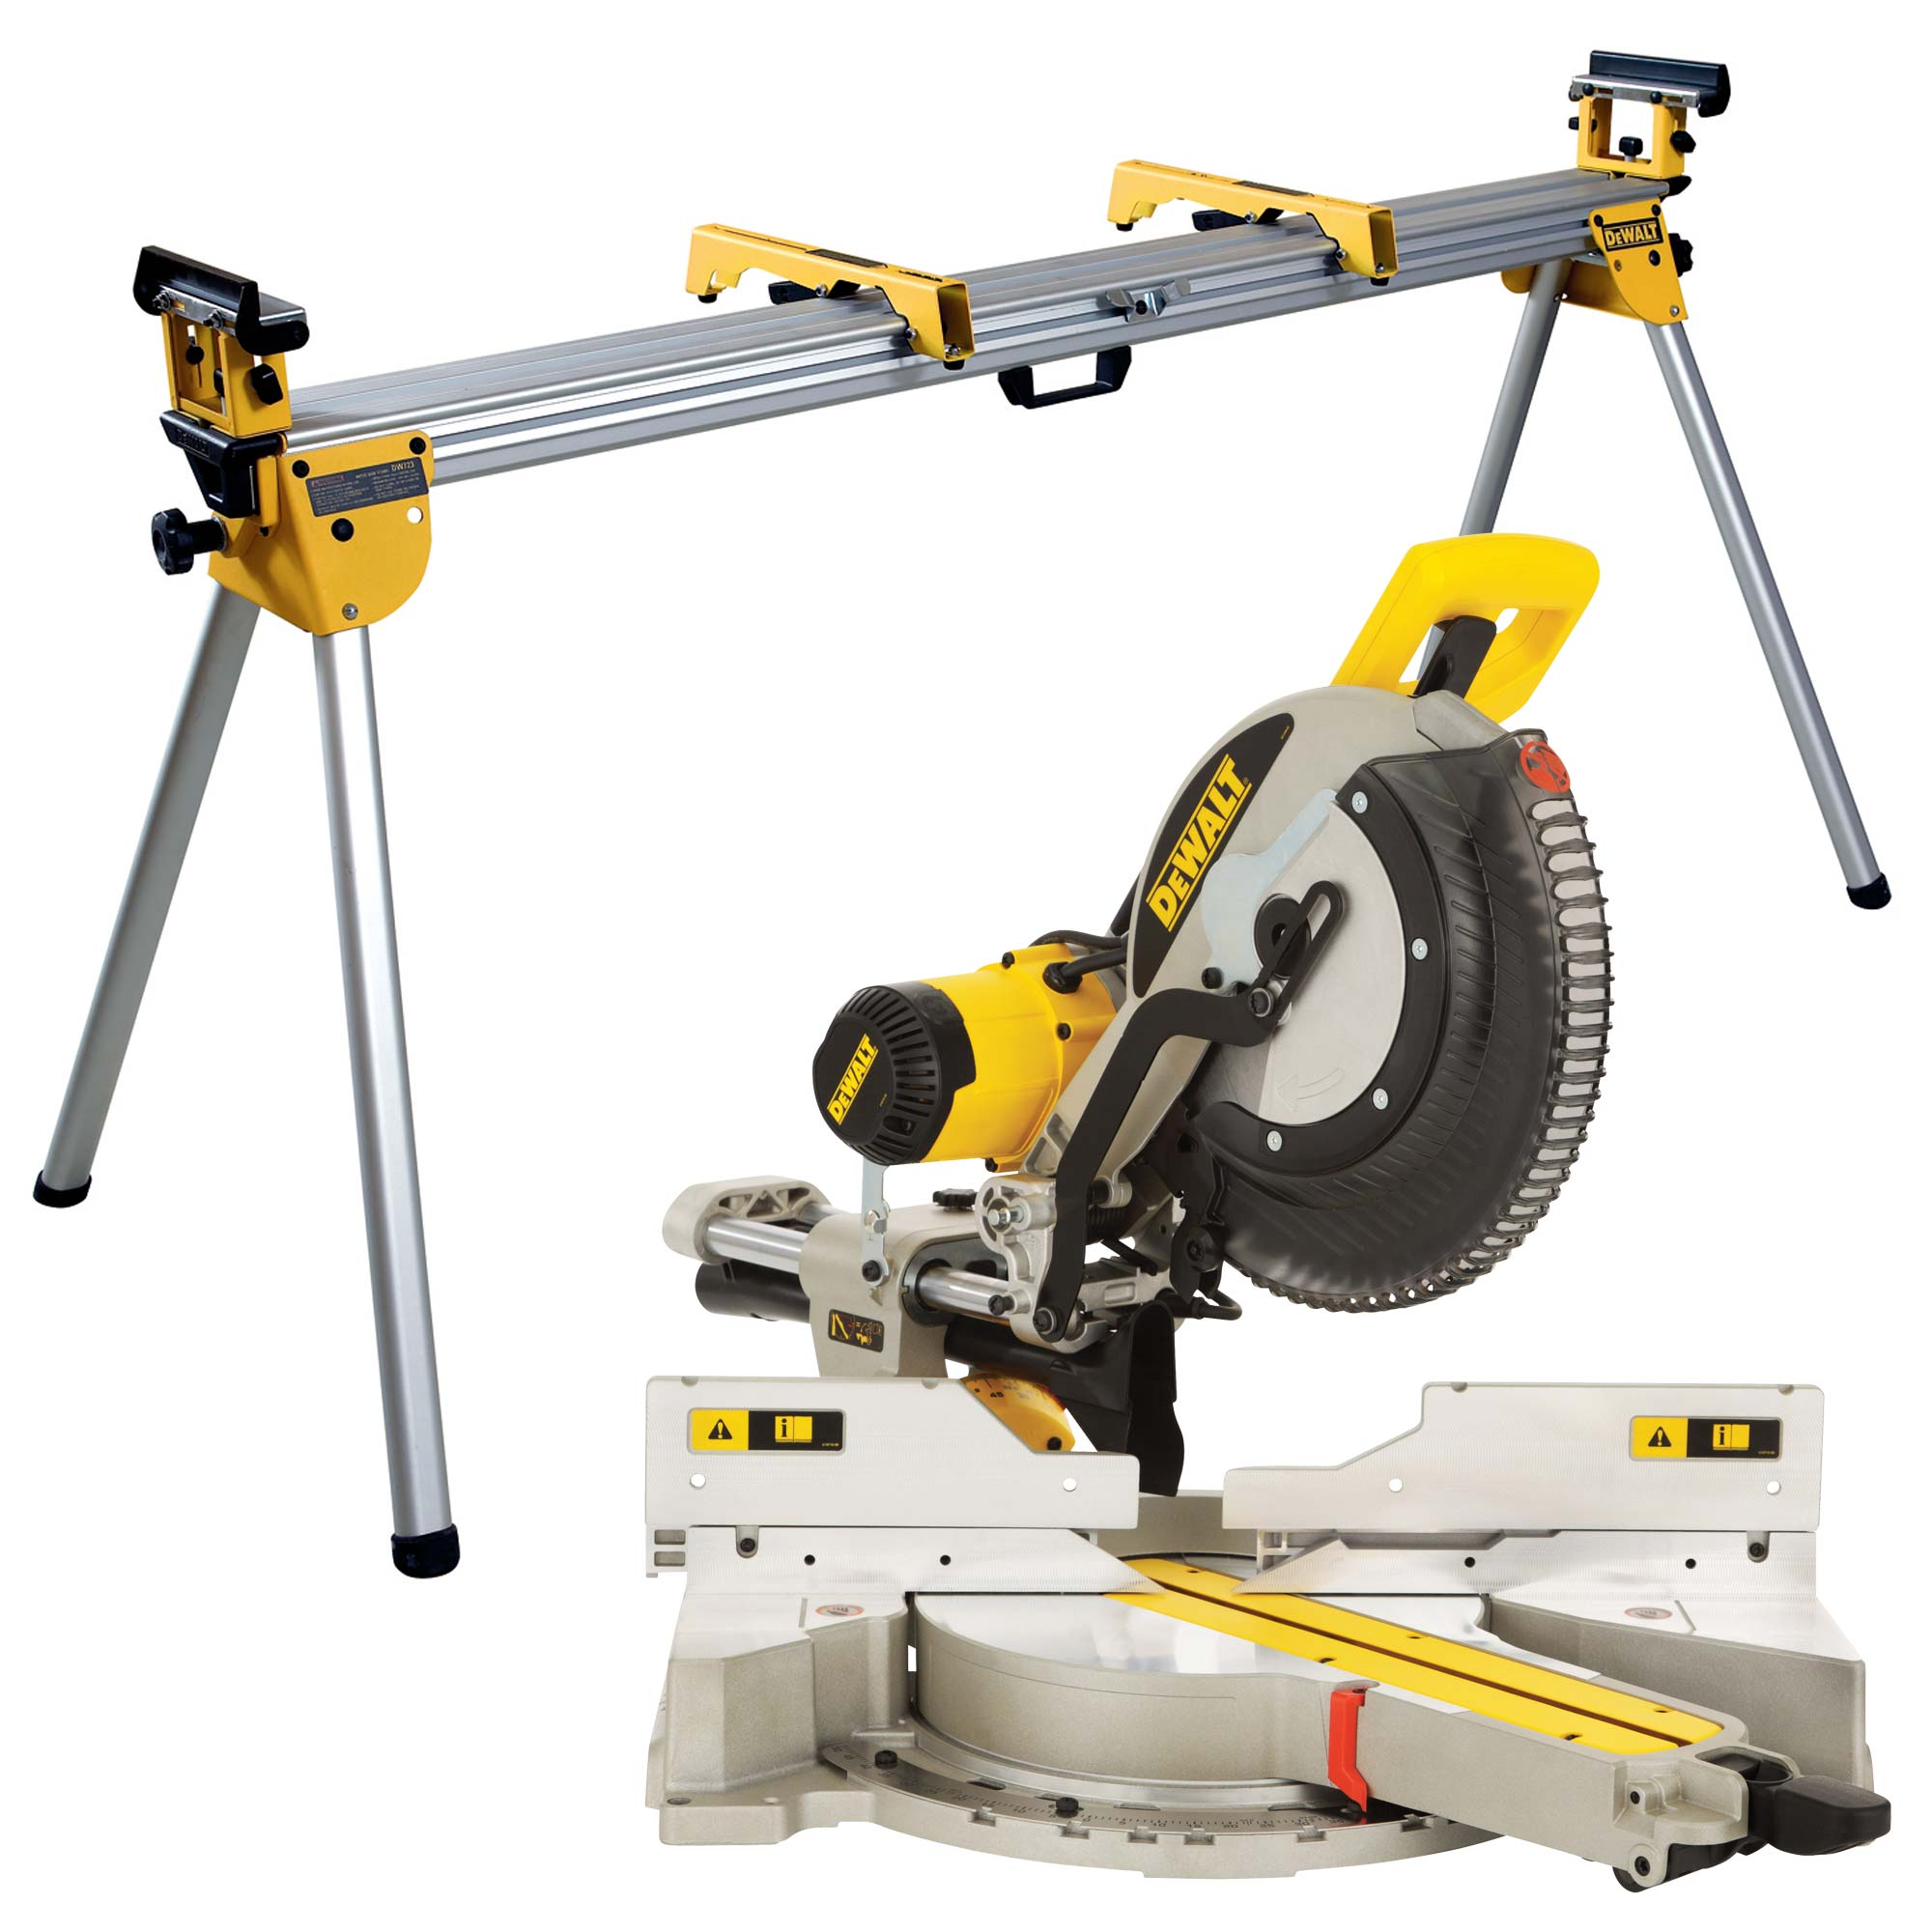 dewalt dws780pkr dewalt 305mm slide compound mitre saw extendable legstand. Black Bedroom Furniture Sets. Home Design Ideas